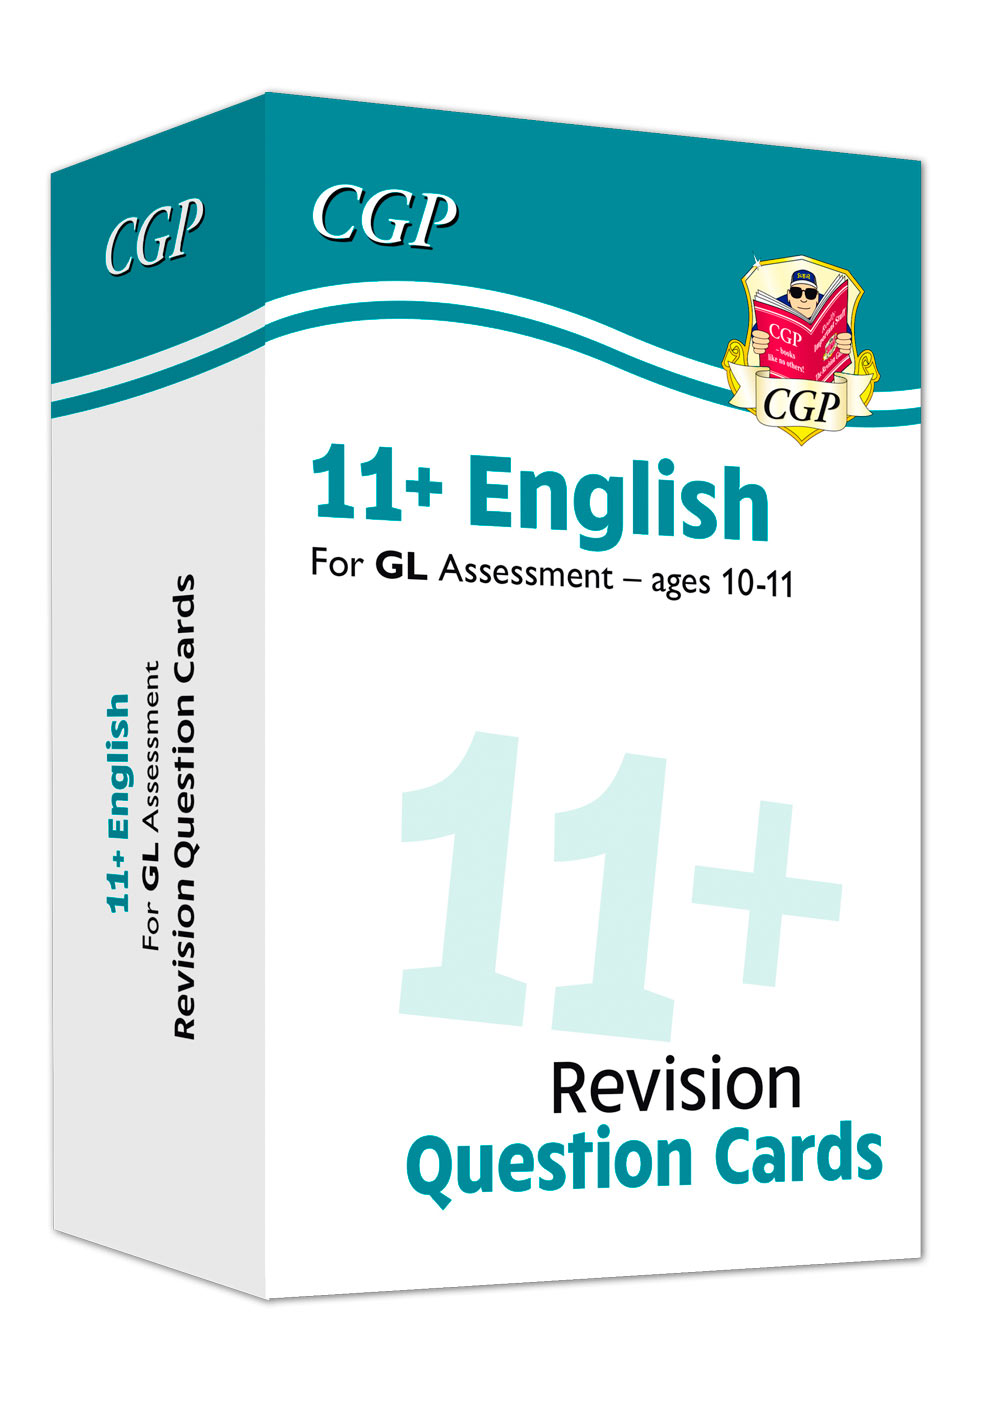 New 11+ GL English Practice Question Cards - Ages 10-11